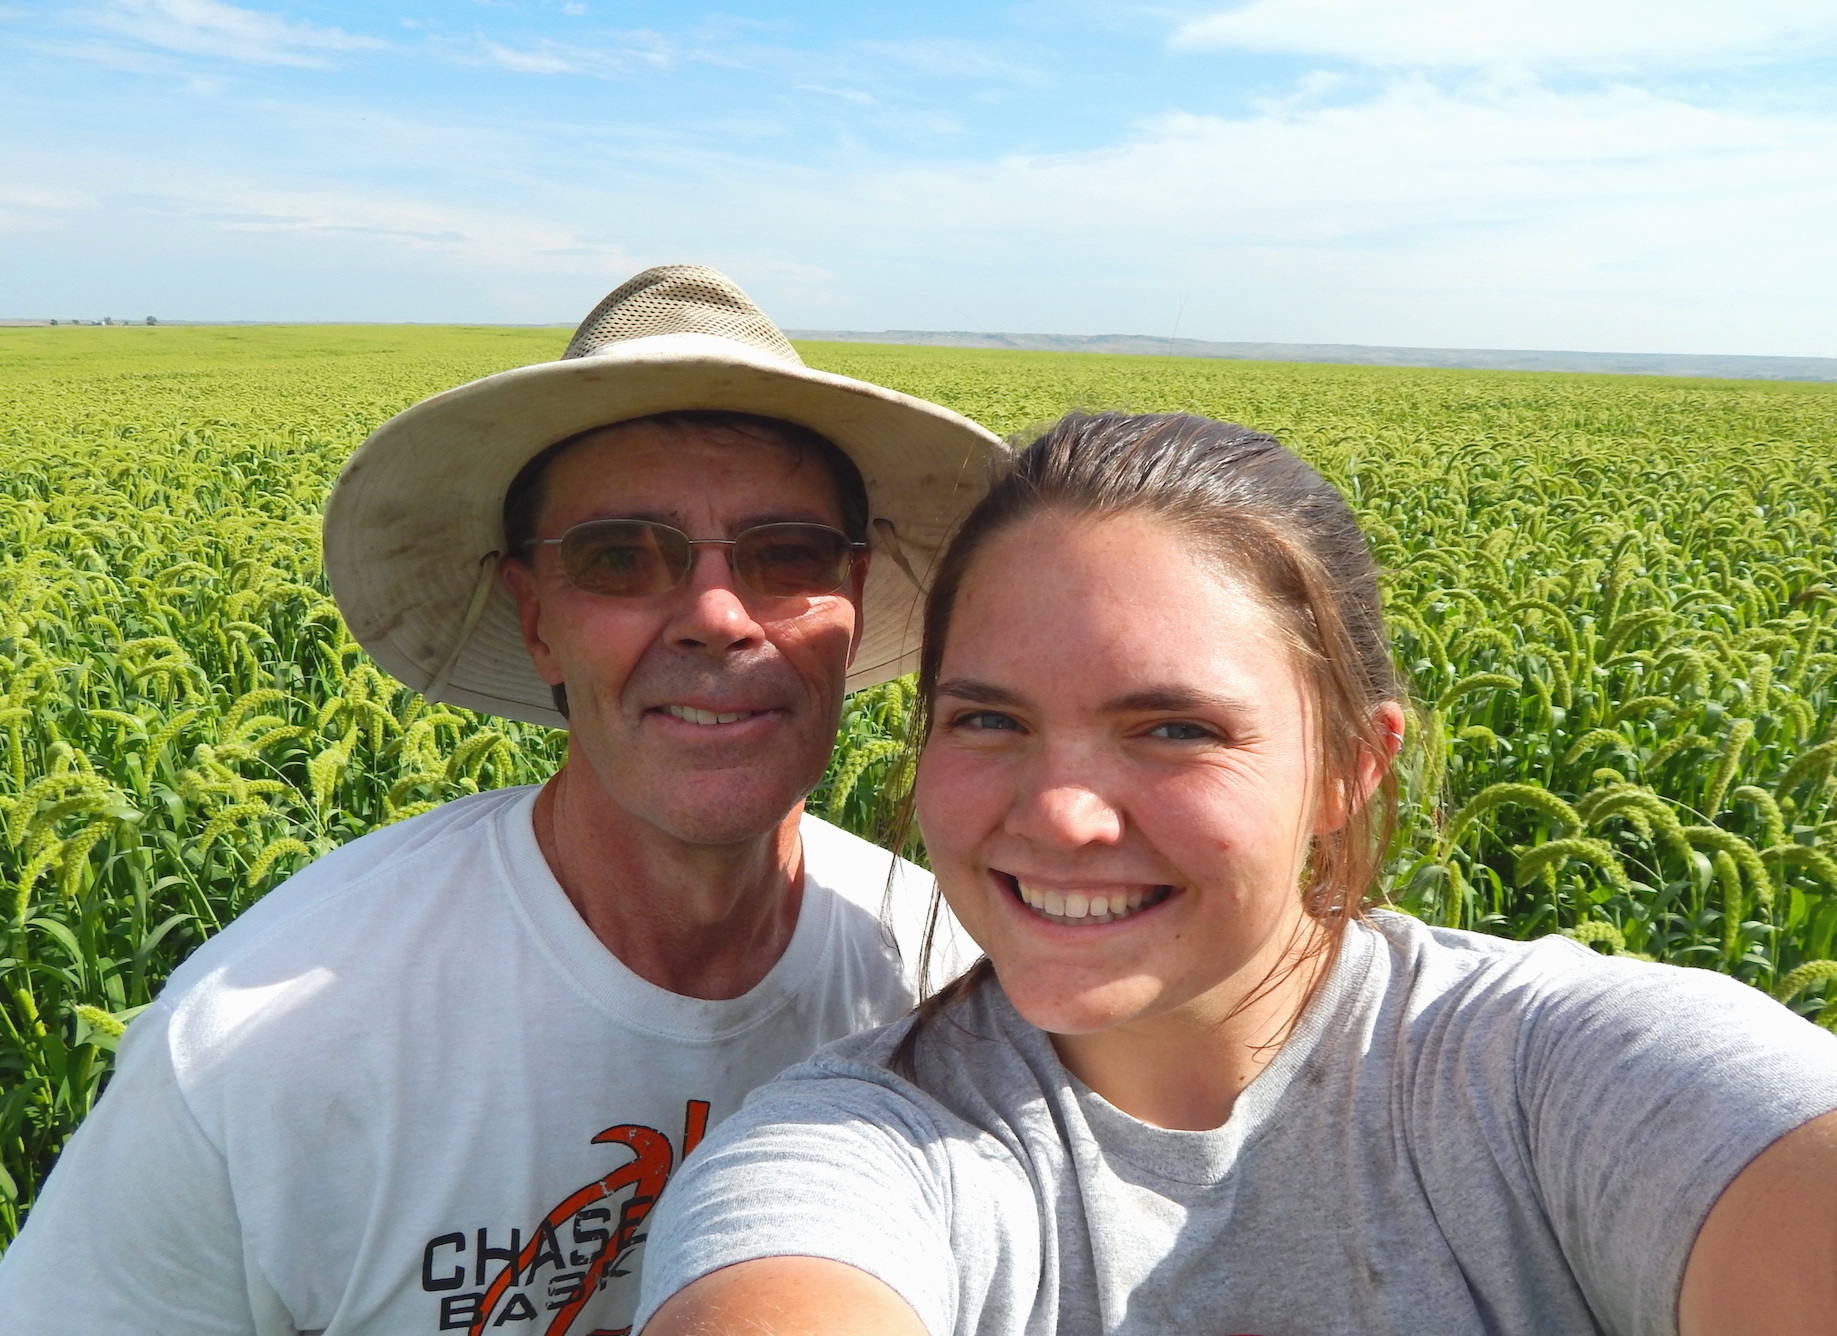 Tom Luhrs and daughter Molly in a field of White Wonder Foxtail Millet.